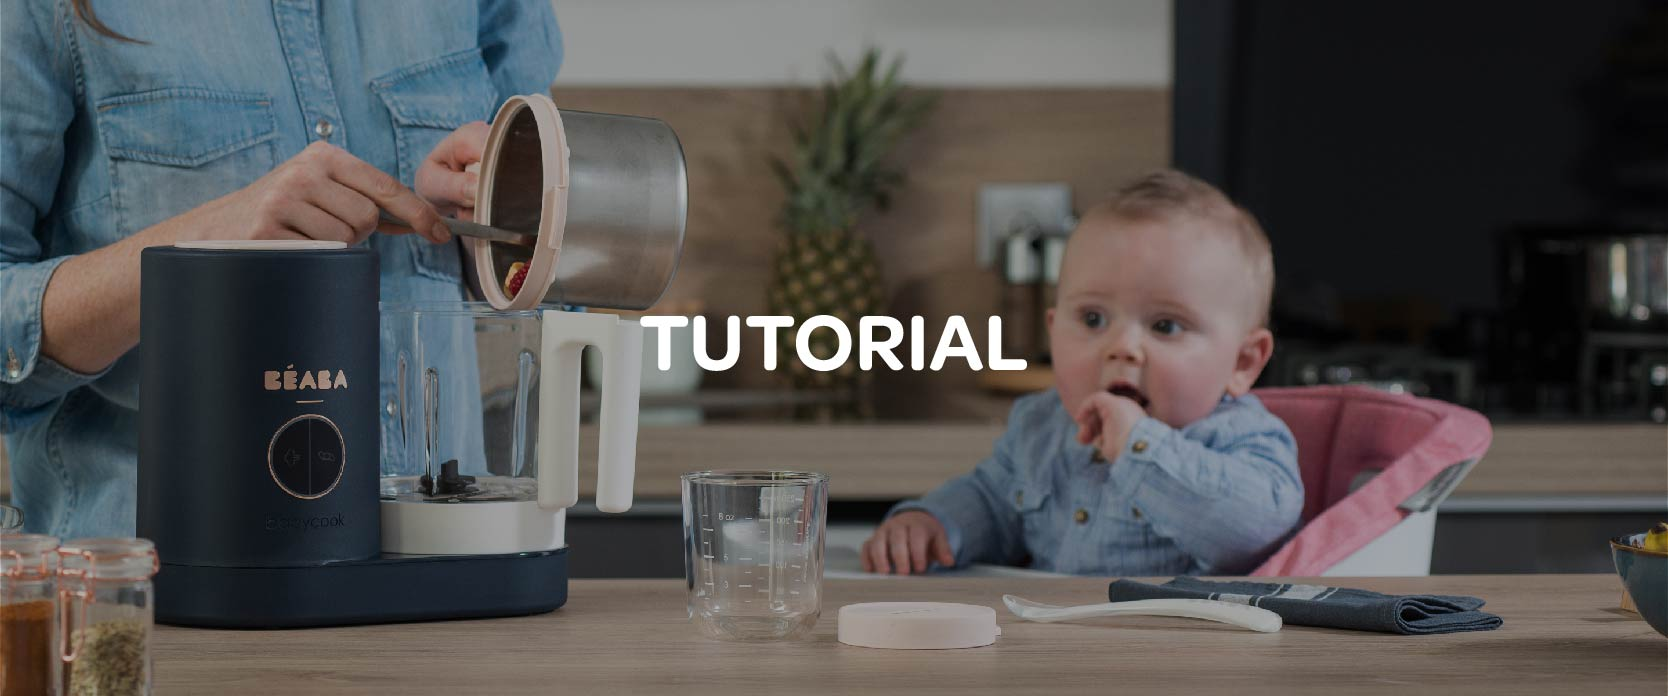 BEABA Products Tutorial